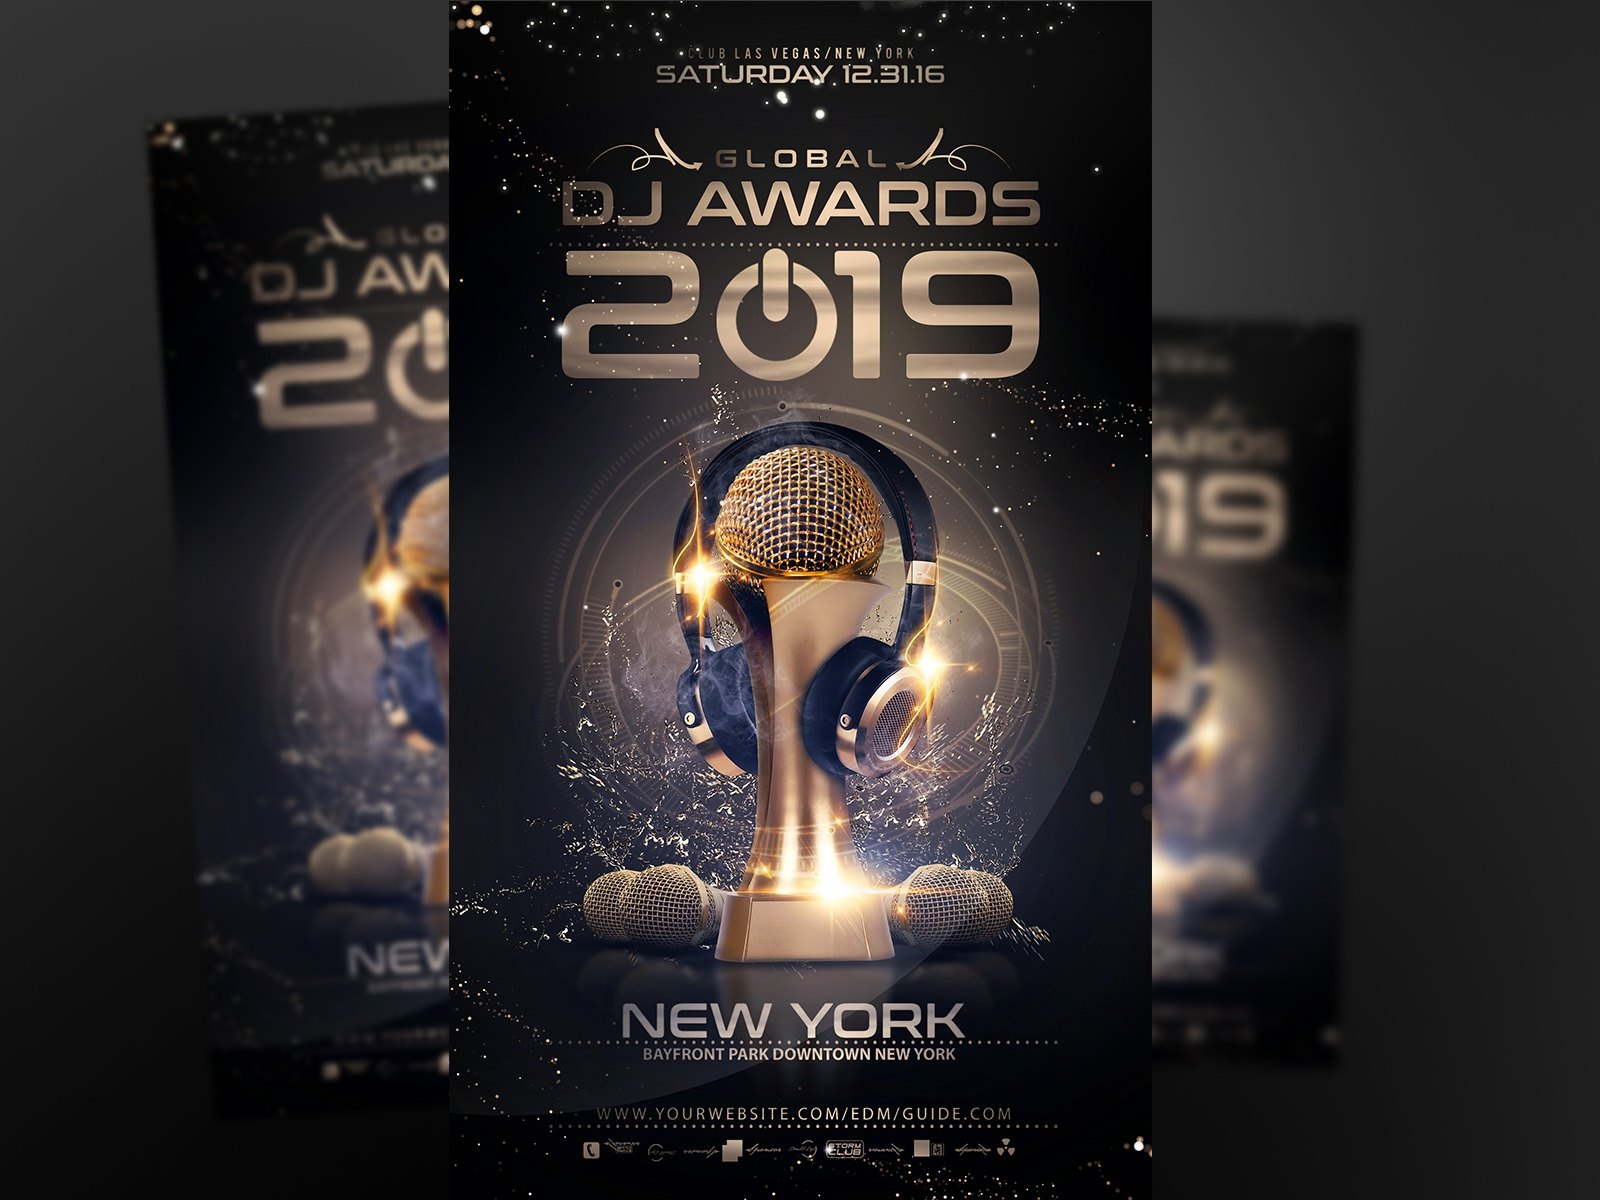 Dj Awards Flyer Template by Vallo Leiman - Dribbble